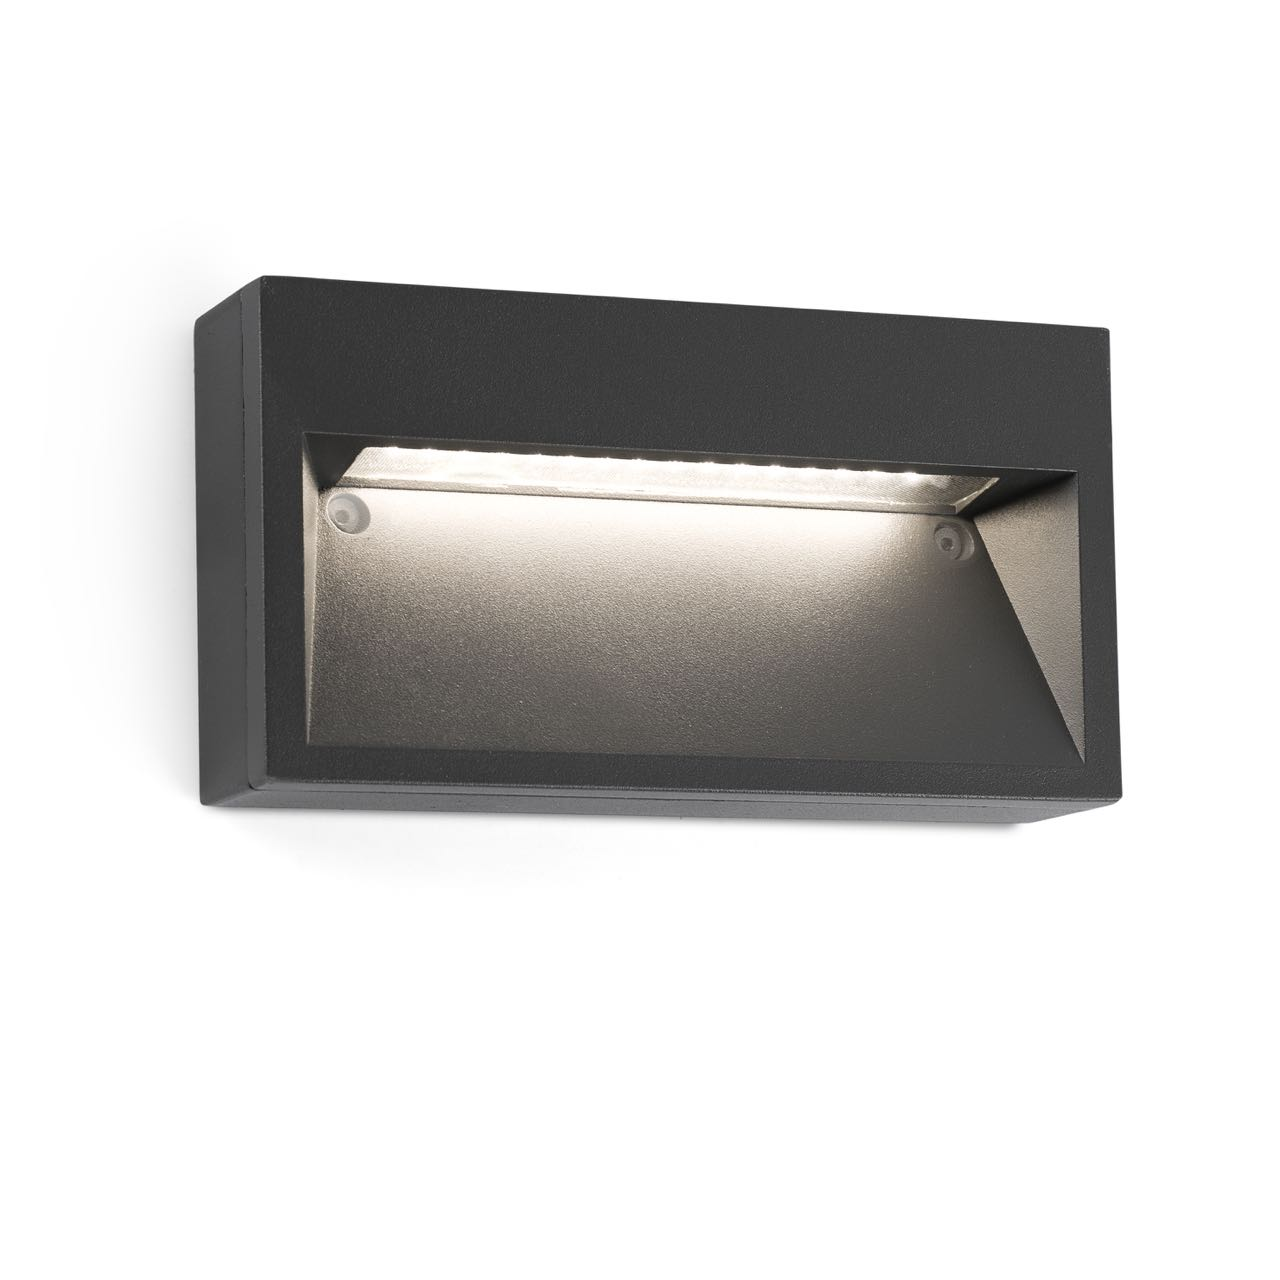 Comprar aplique de pared para jard n con led path de faro for Apliques jardin